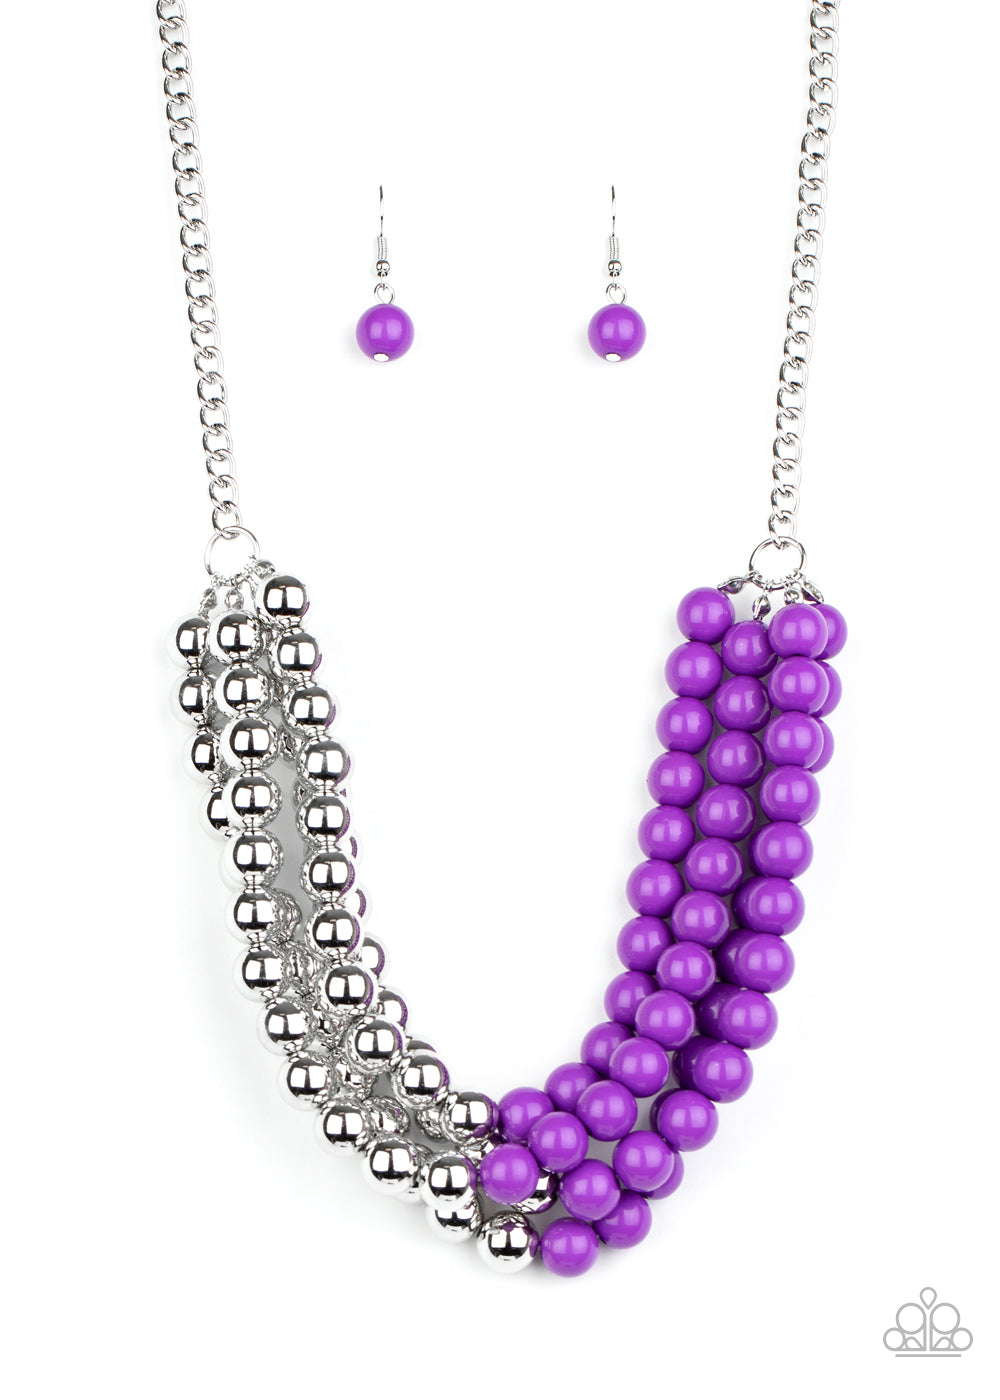 five-dollar-jewelry-layer-after-layer-purple-necklace-paparazzi-accessories